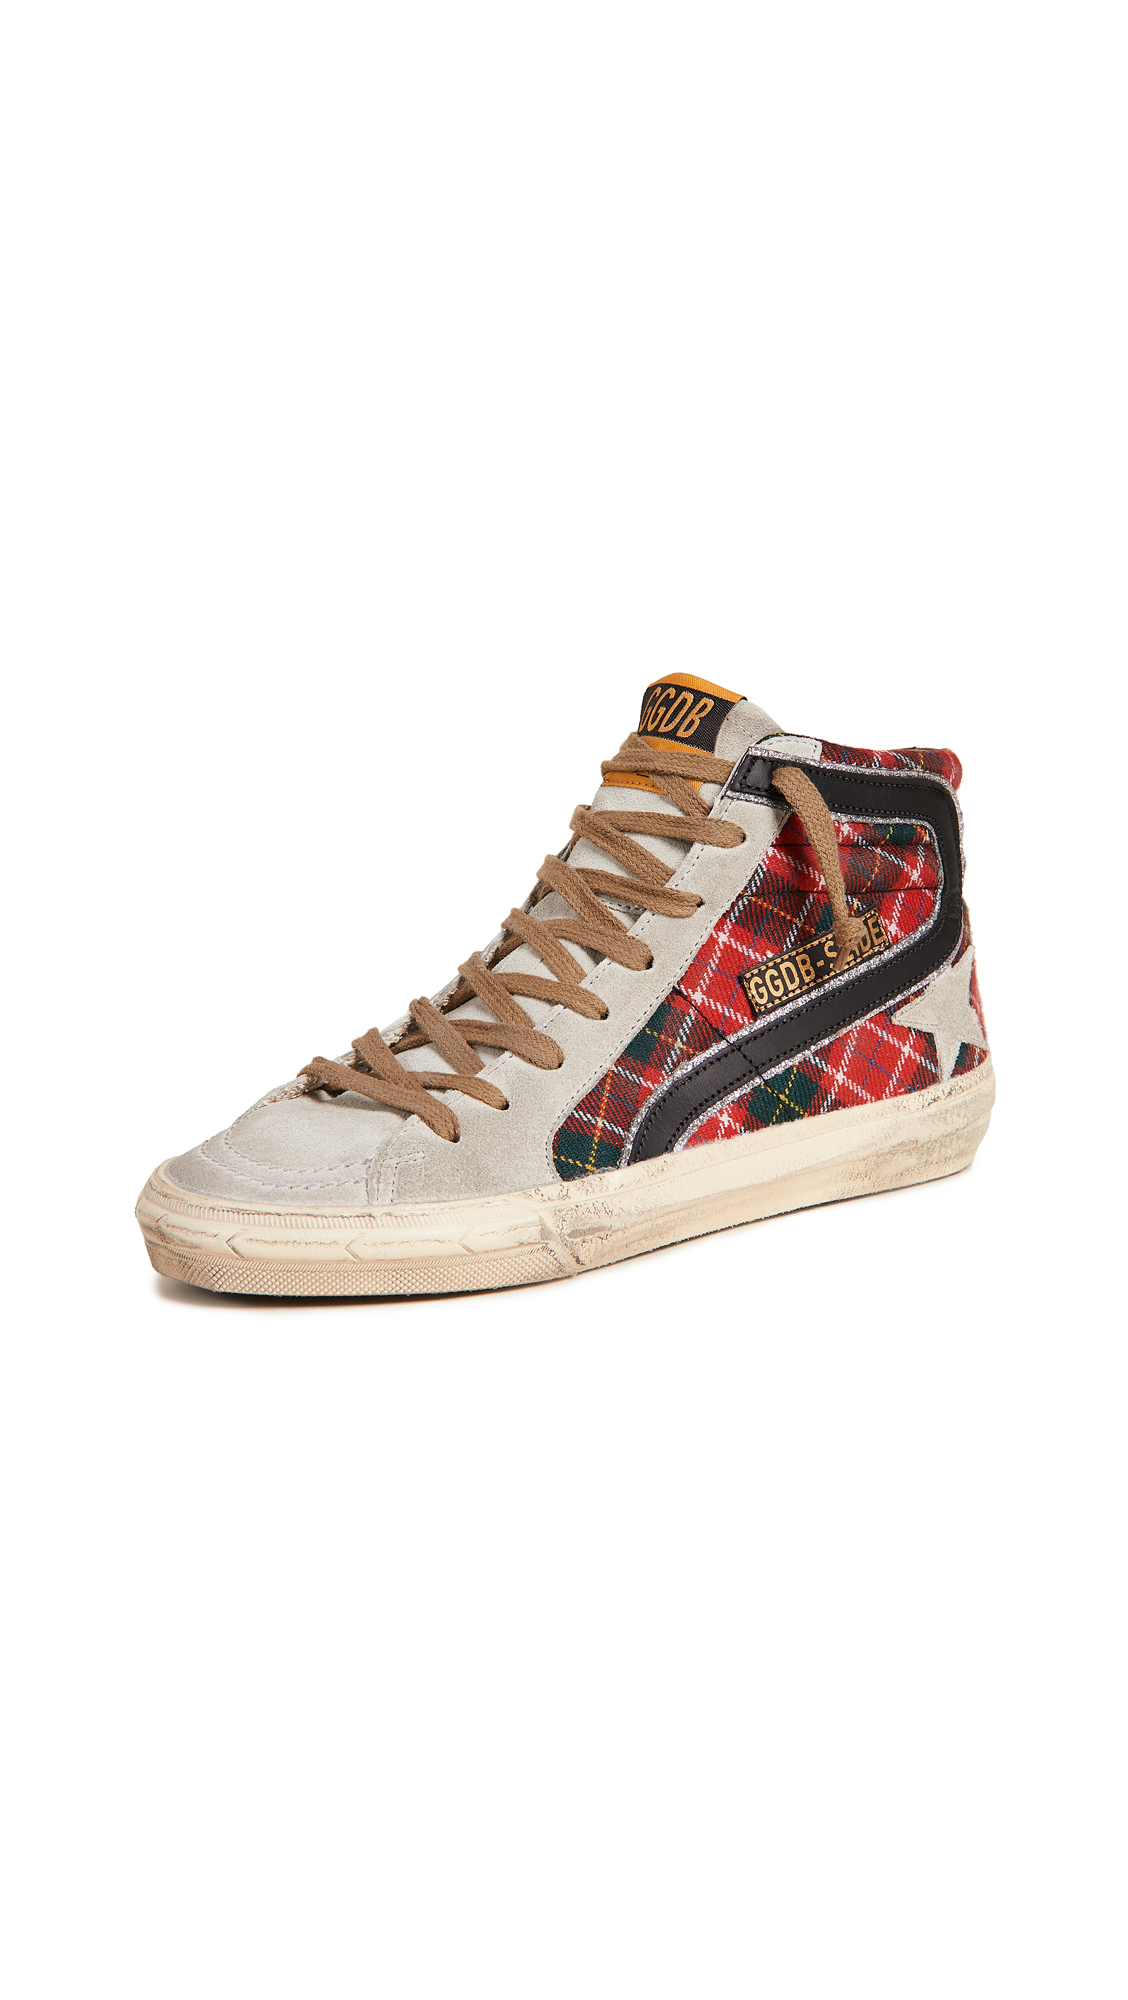 Golden Goose Slide Sneakers - Red Tartan